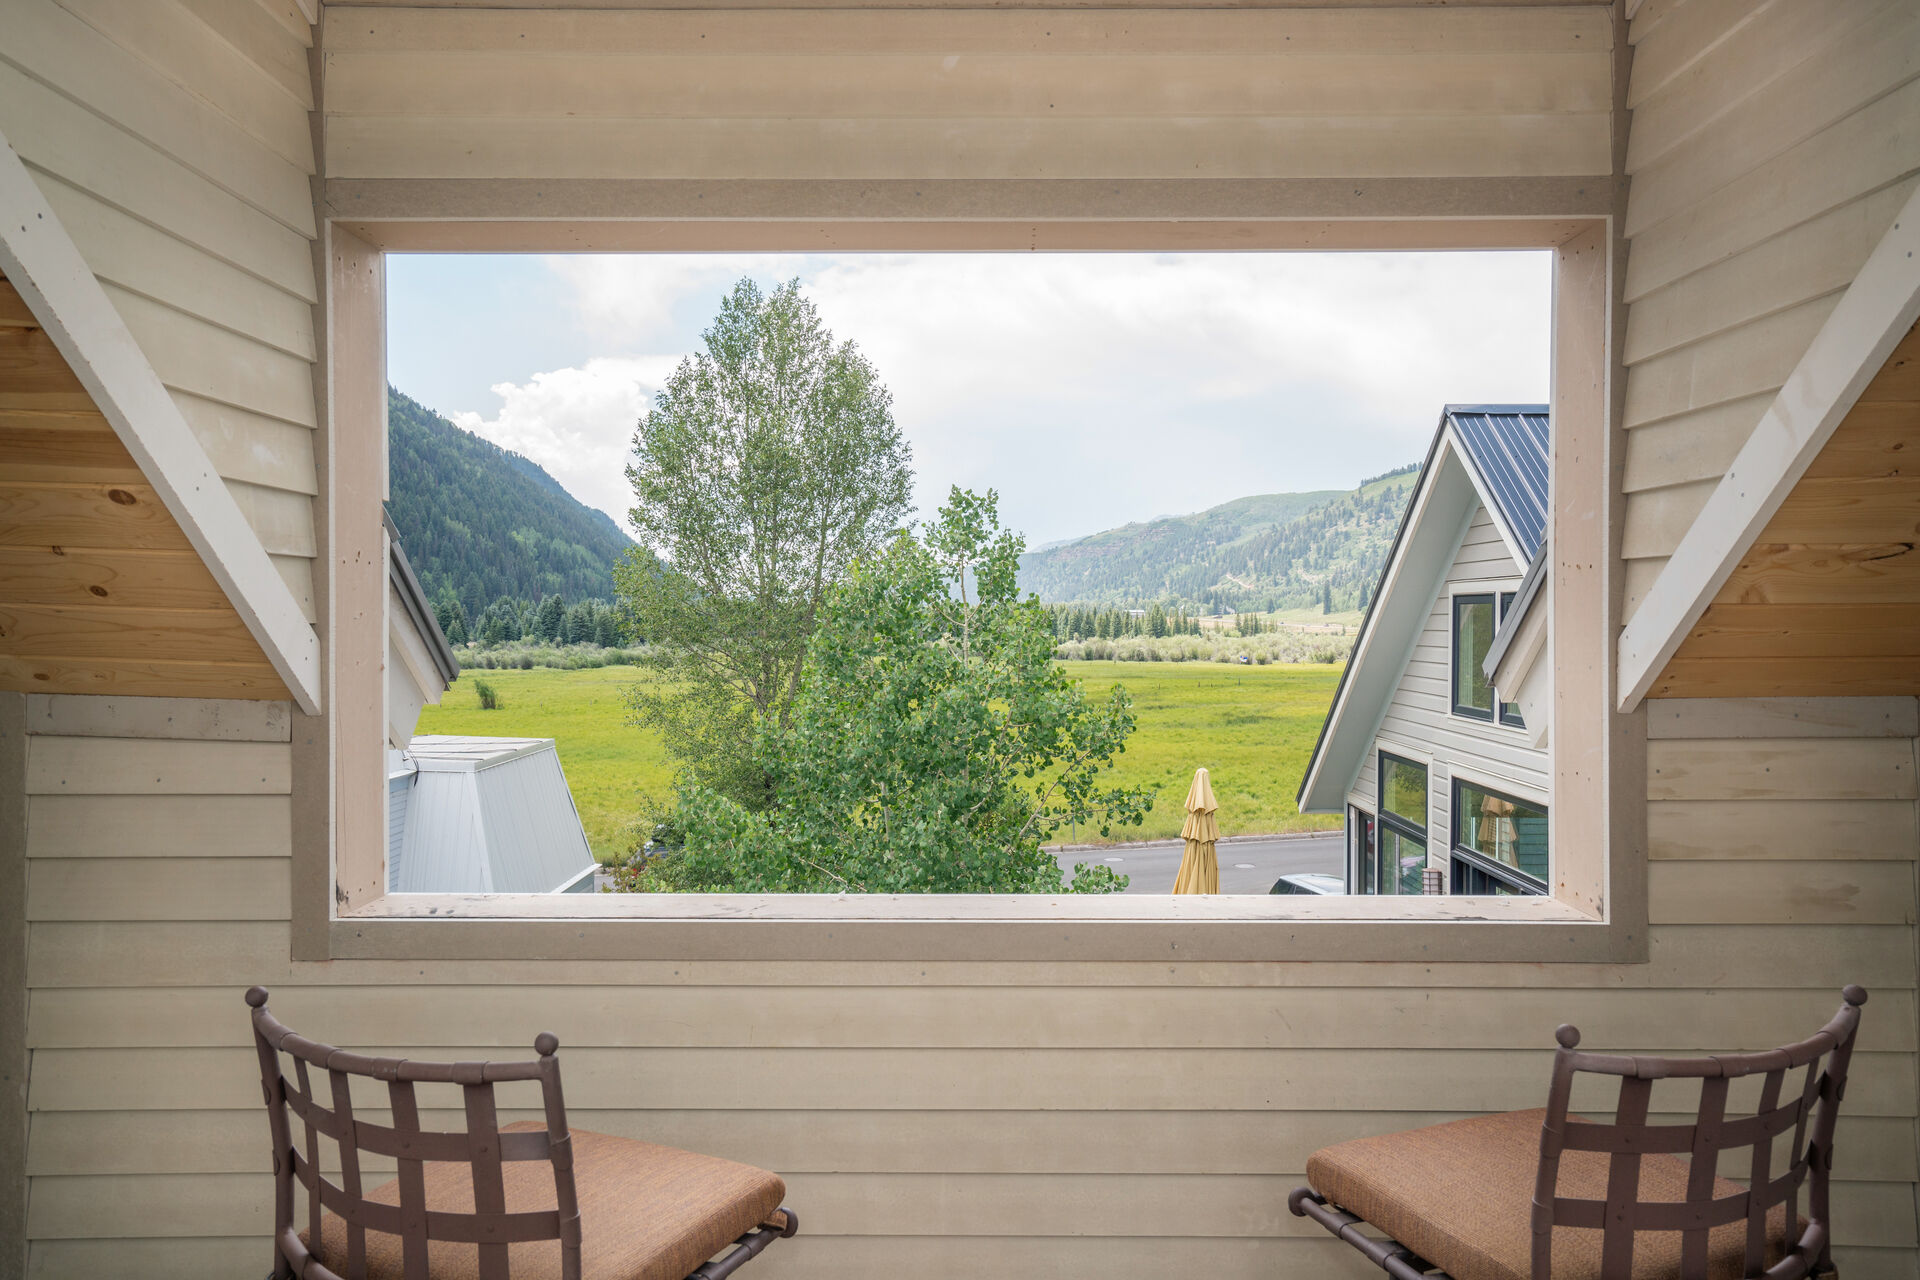 Views of the Valley and Mountains in Telluride from Vacation Home in Telluride